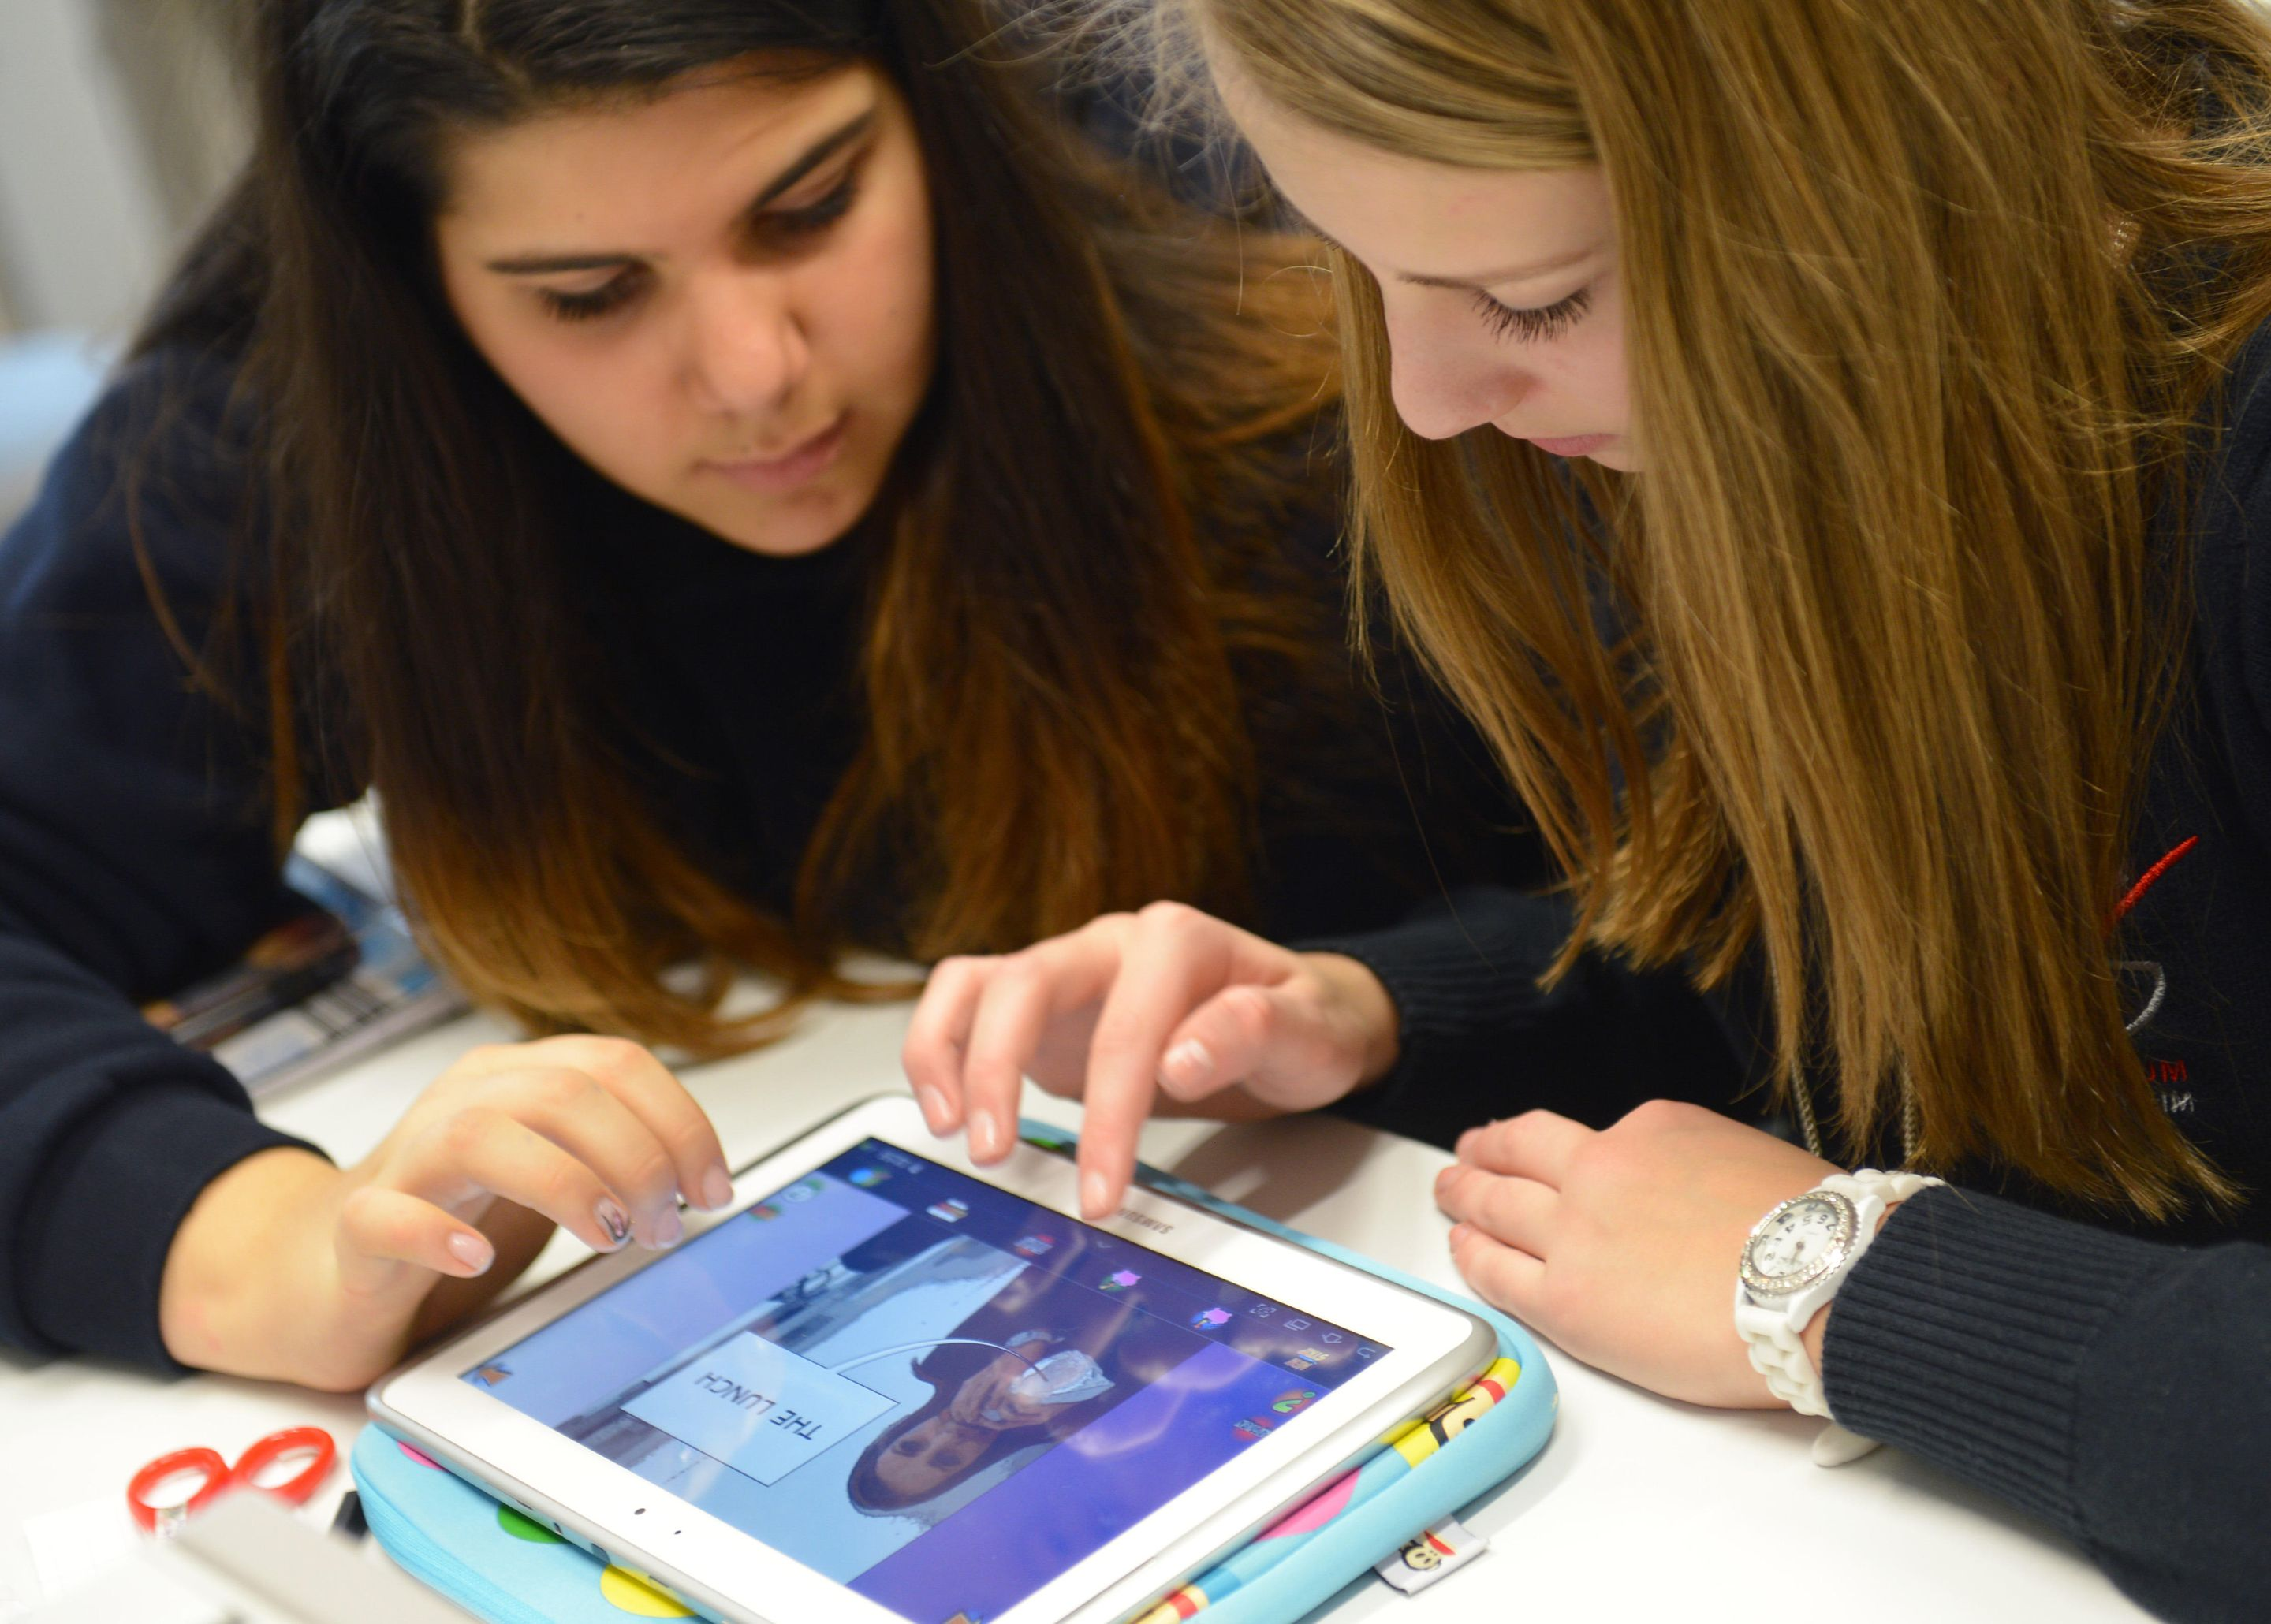 Two female high school students working together on a tablet